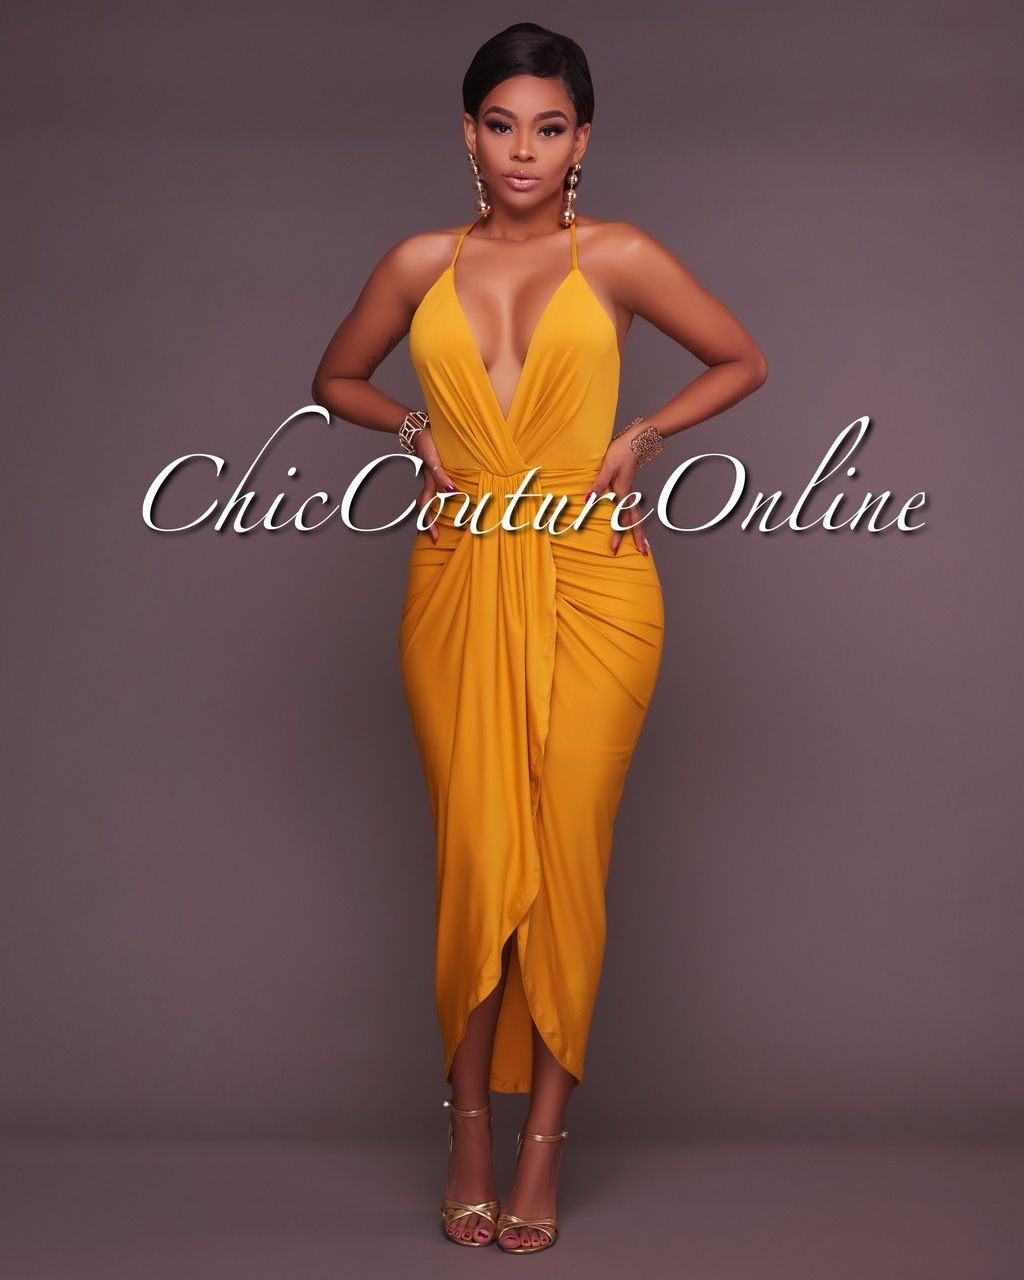 8a742b3a6f4 Pin by Chic Couture Online on Clothing ~ Chic Couture Online ...